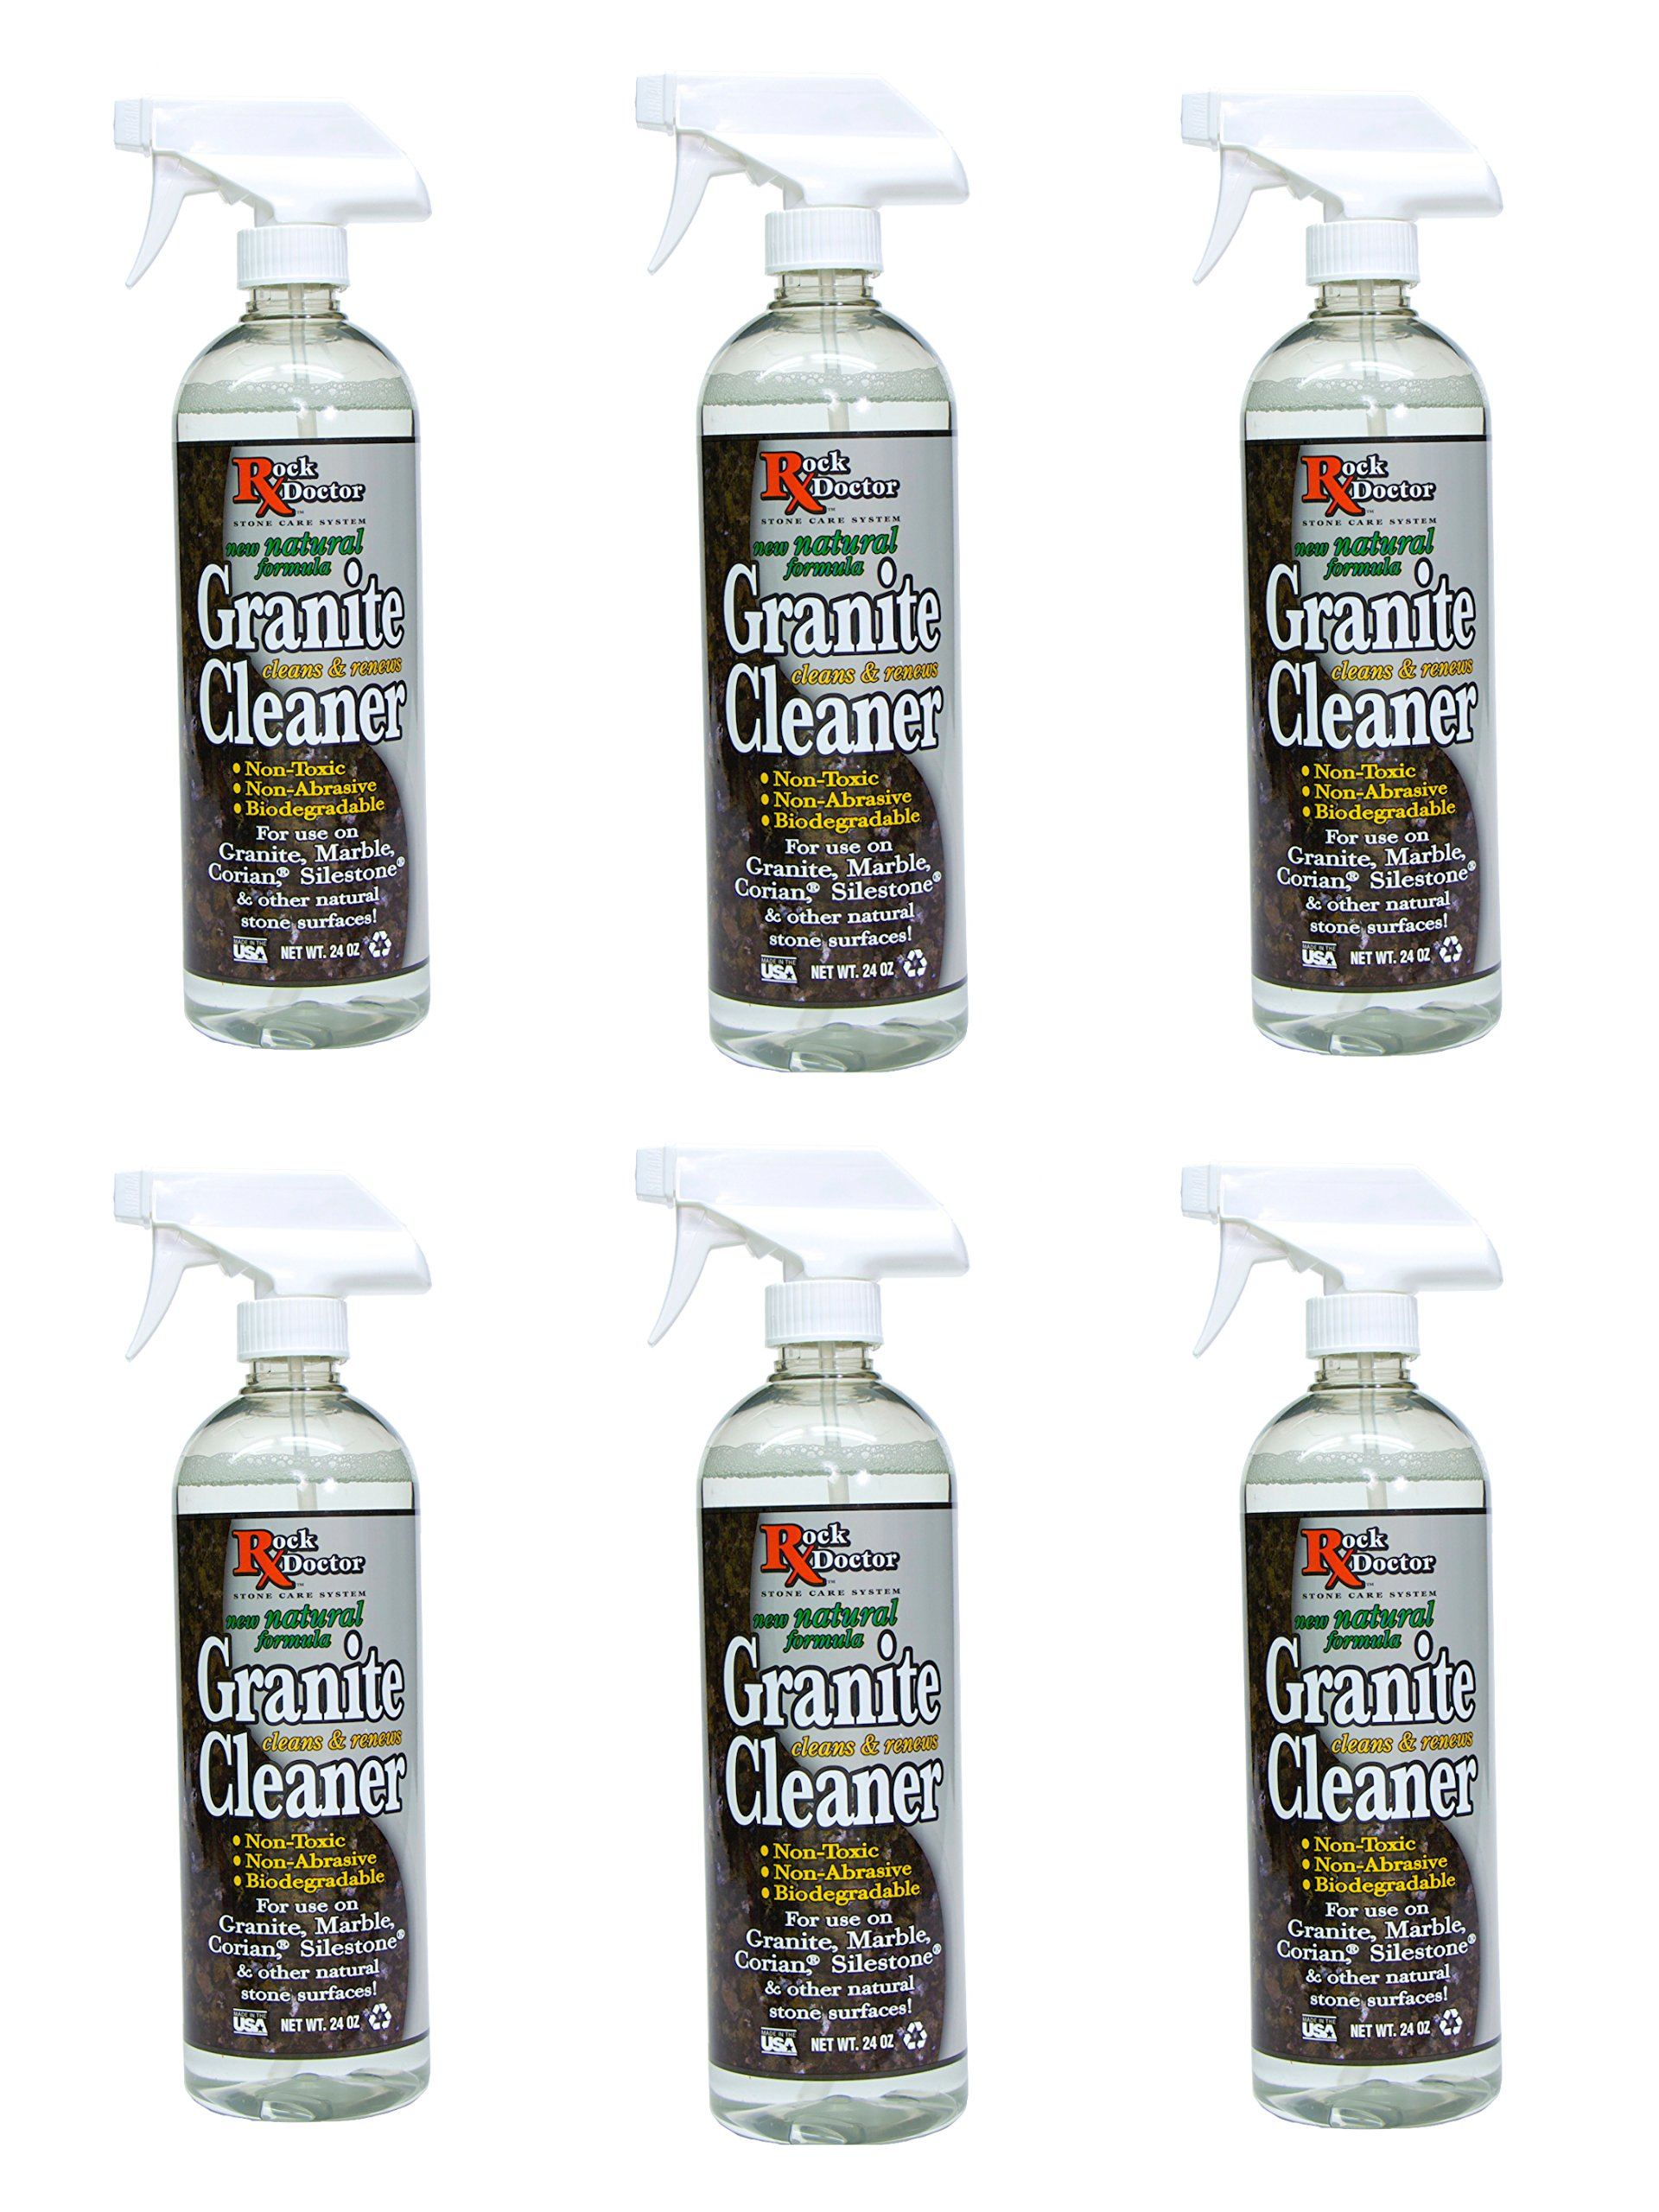 24 Oz. Rock Doctor All Natural Granite Cleaner (Case of 6 Bottles)